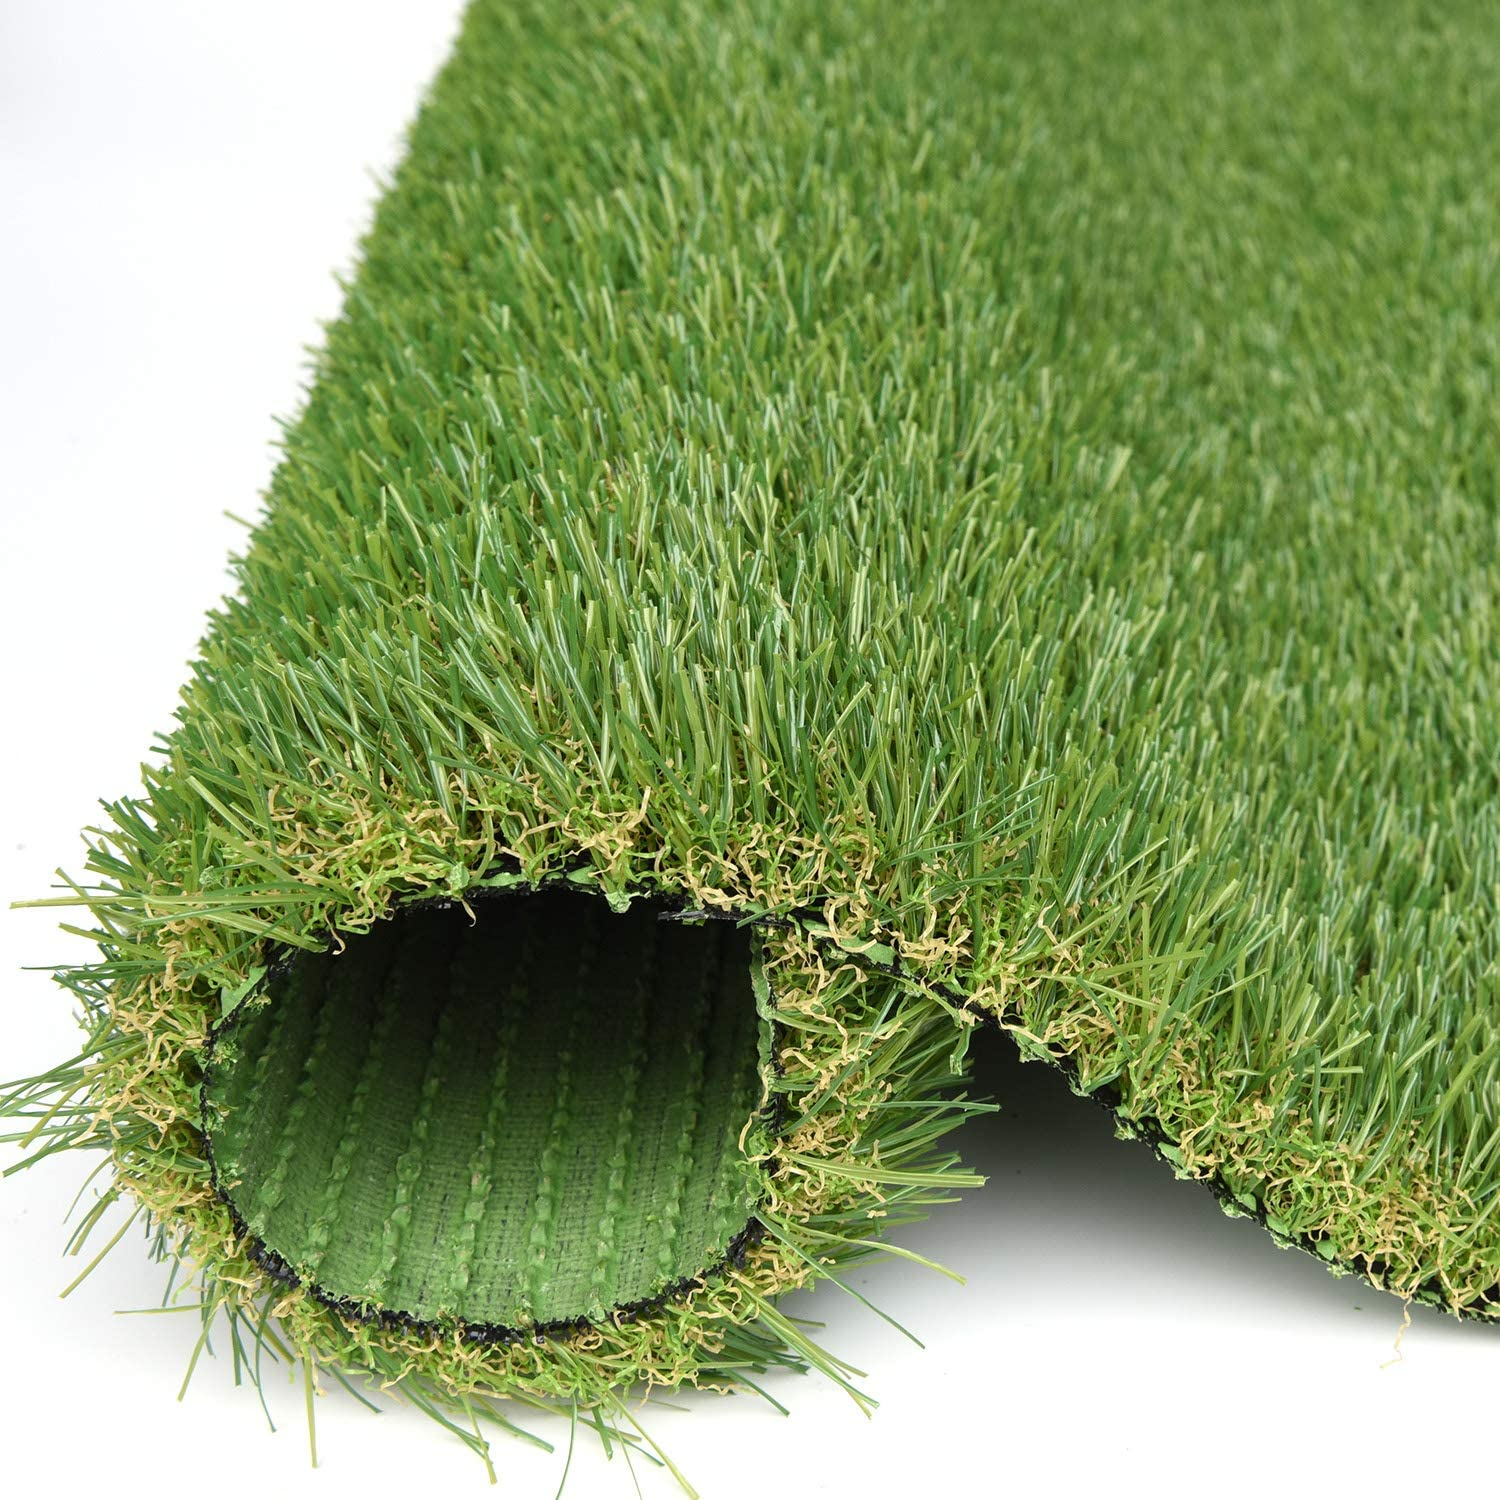 RoundLove Artificial Grass Turf, 4 Tone Synthetic Grass Patch Mat w/Drainage Holes, Lush & Hard Pet Turf Astroturf Rug, Fake Turf for Indoor & Outdoor Decor 24X20in